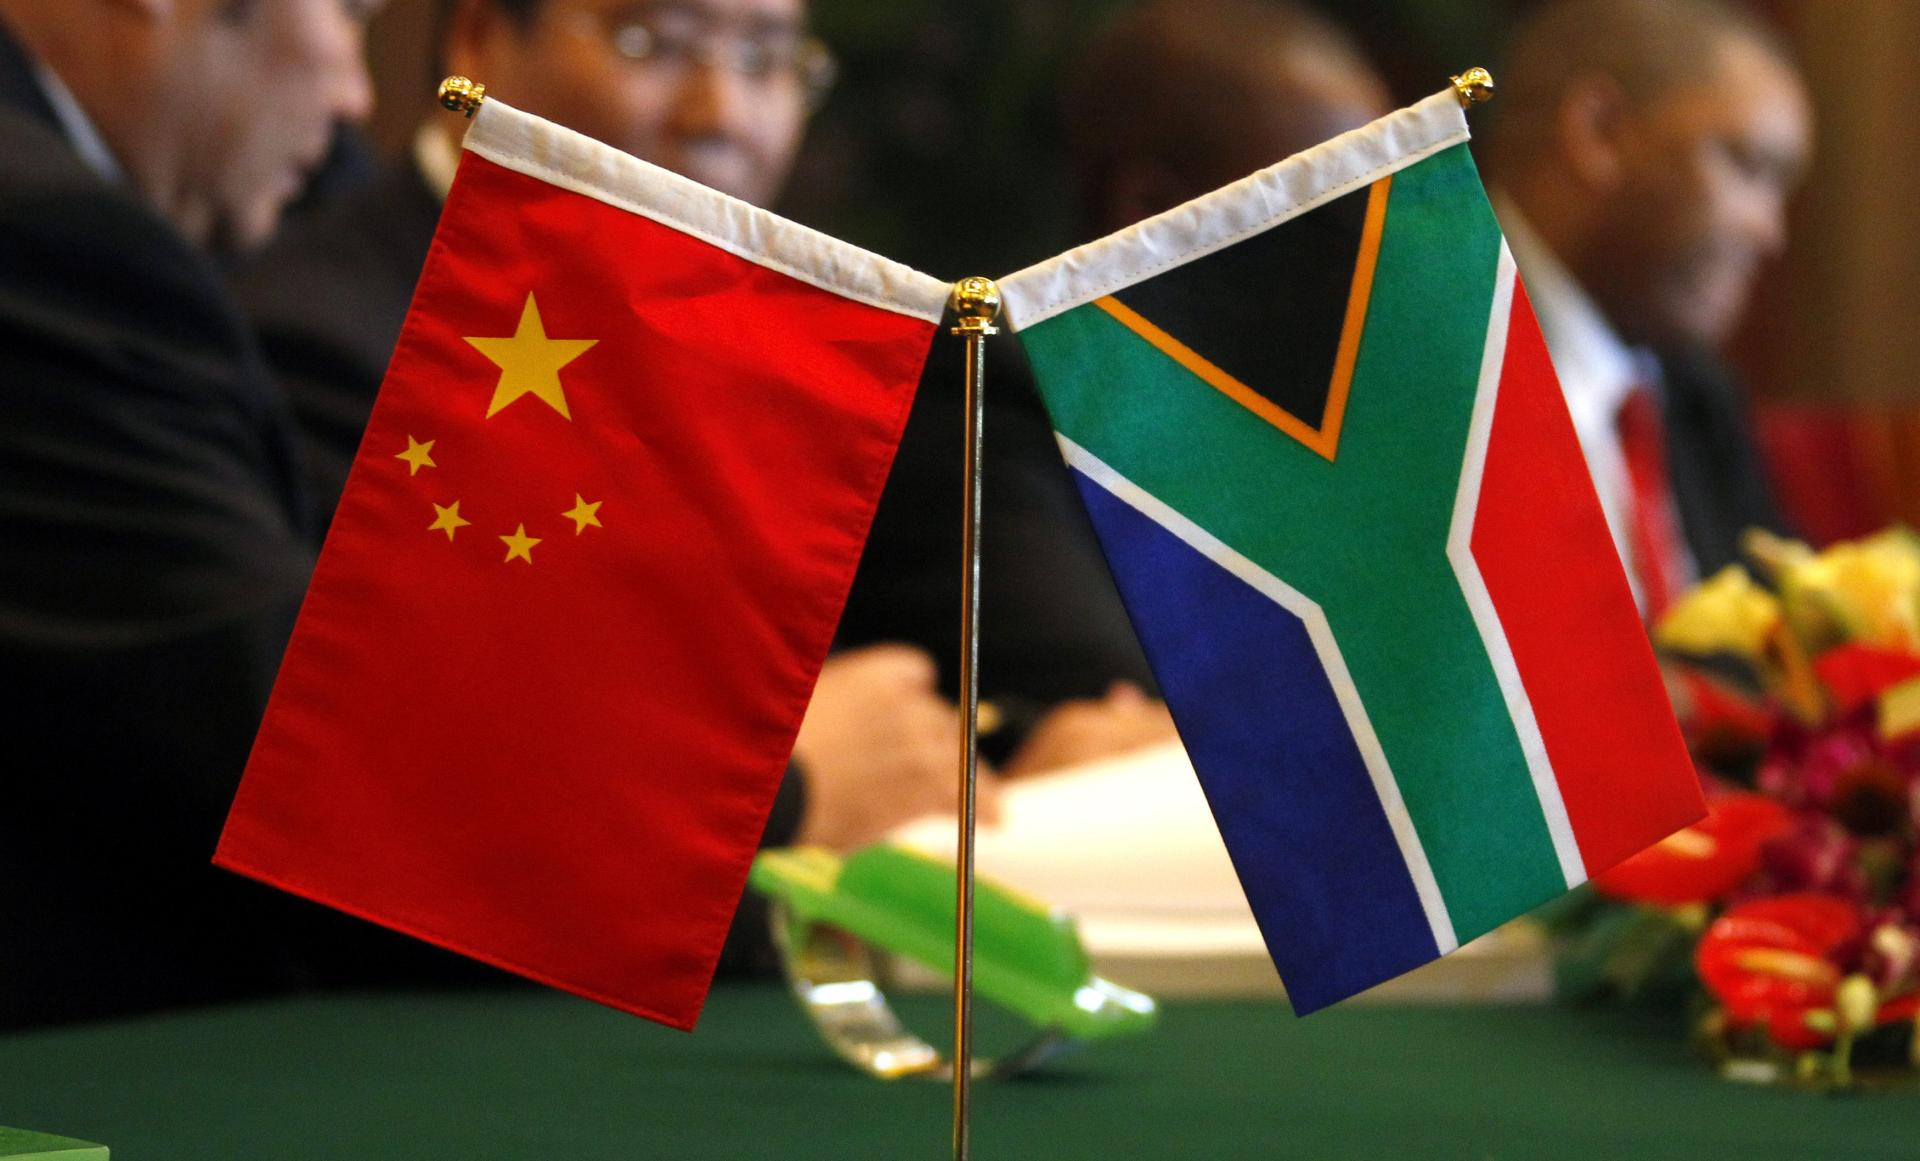 Cooperation with China helps Africa in modernizing industrial chain